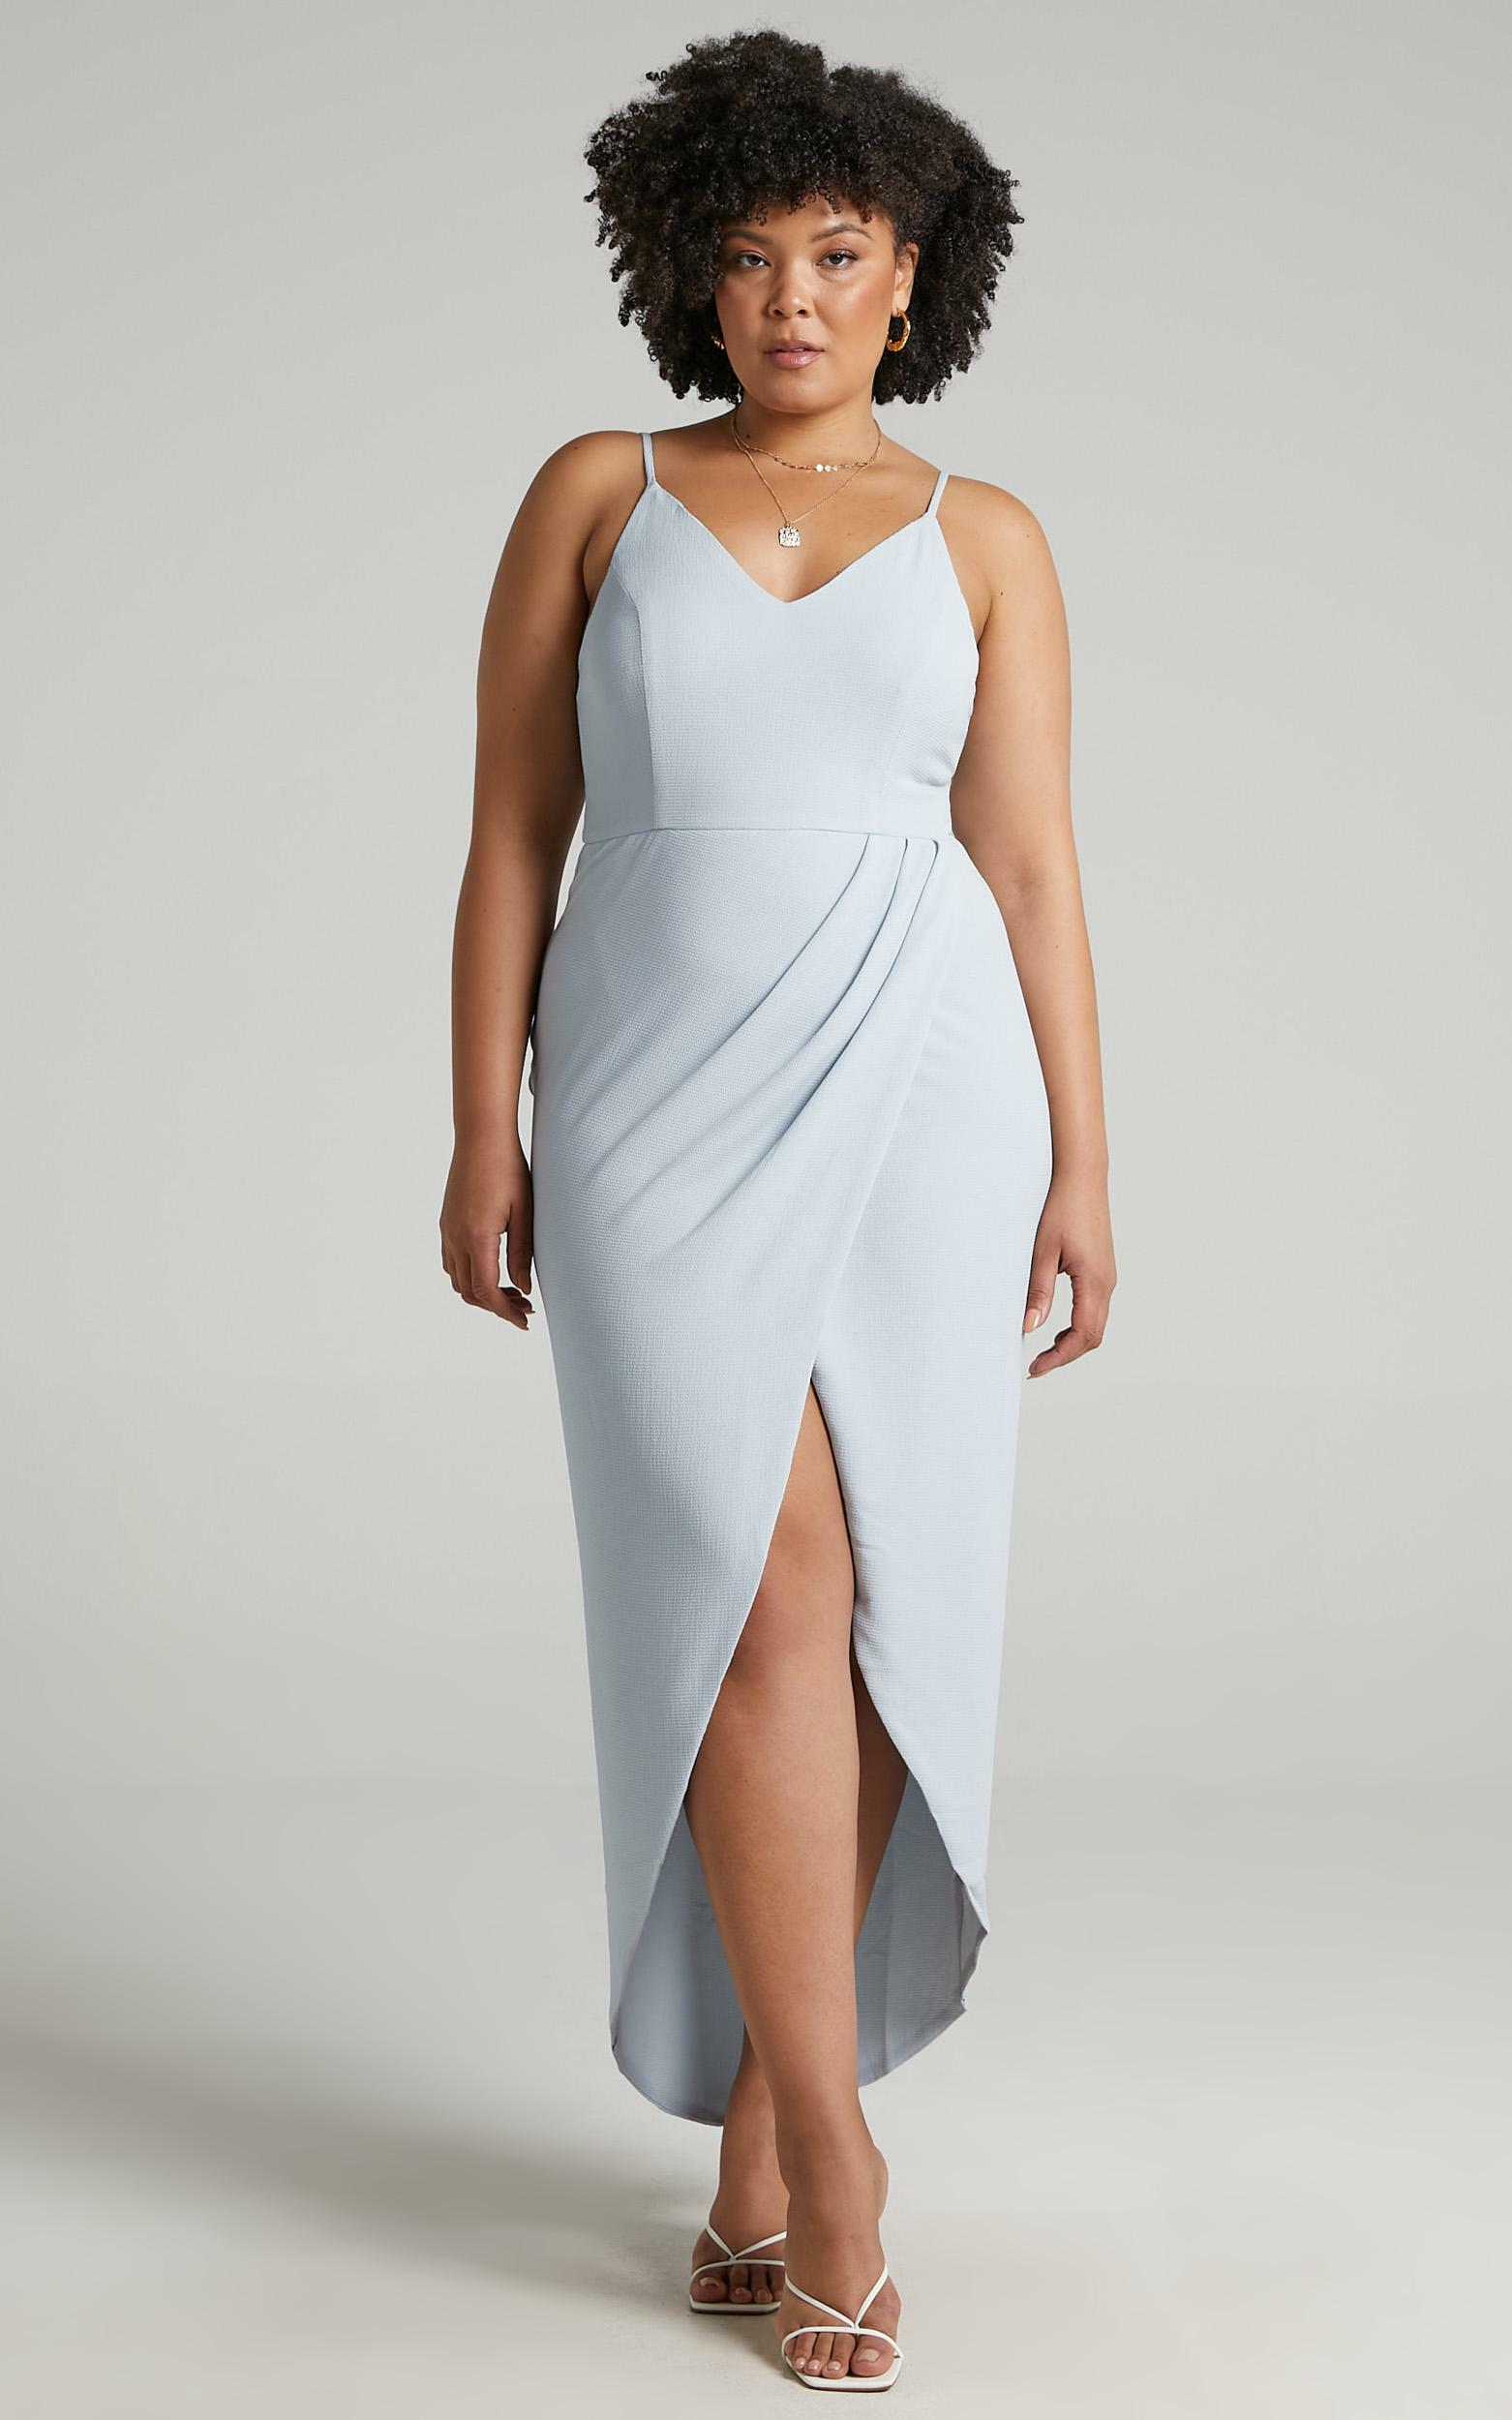 Lucky Day Drape Maxi Dress in Blue - 04, BLU2, hi-res image number null